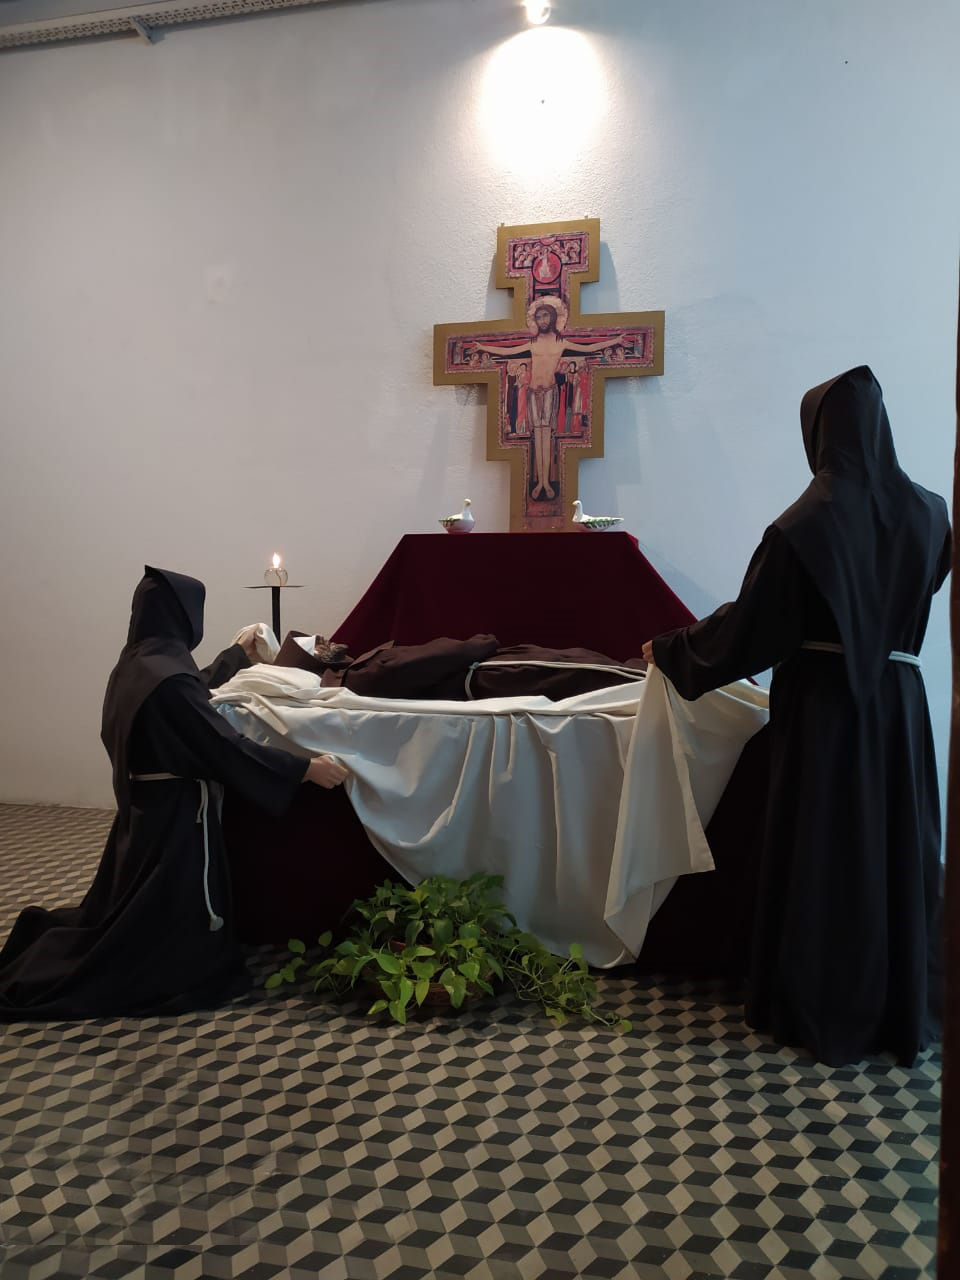 The friars of the monastery of Buenos Aires while commemorating the Transitus of St. Francis of Assisi, October 2020